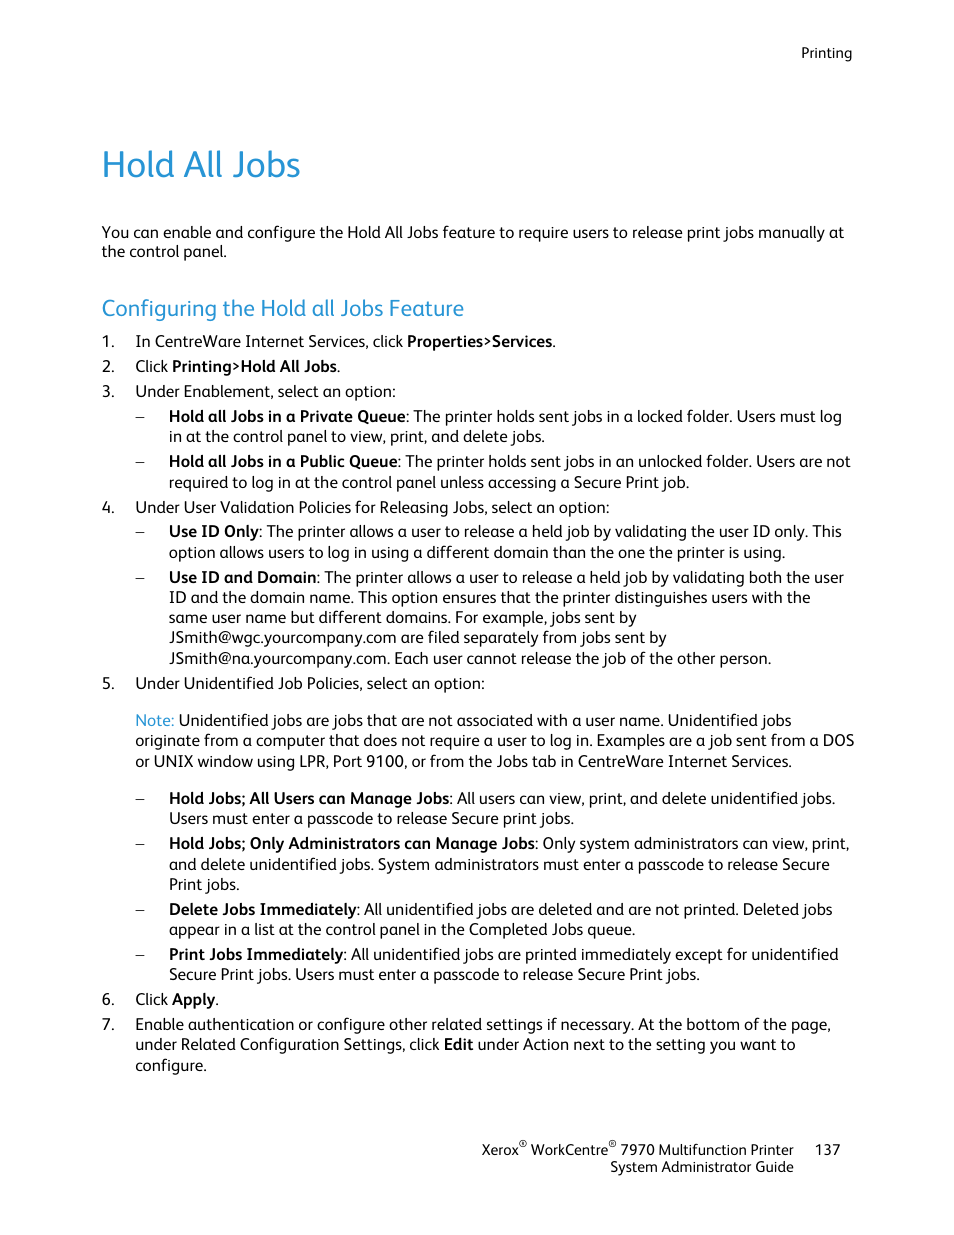 Hold all jobs, Configuring the hold all jobs feature | Xerox